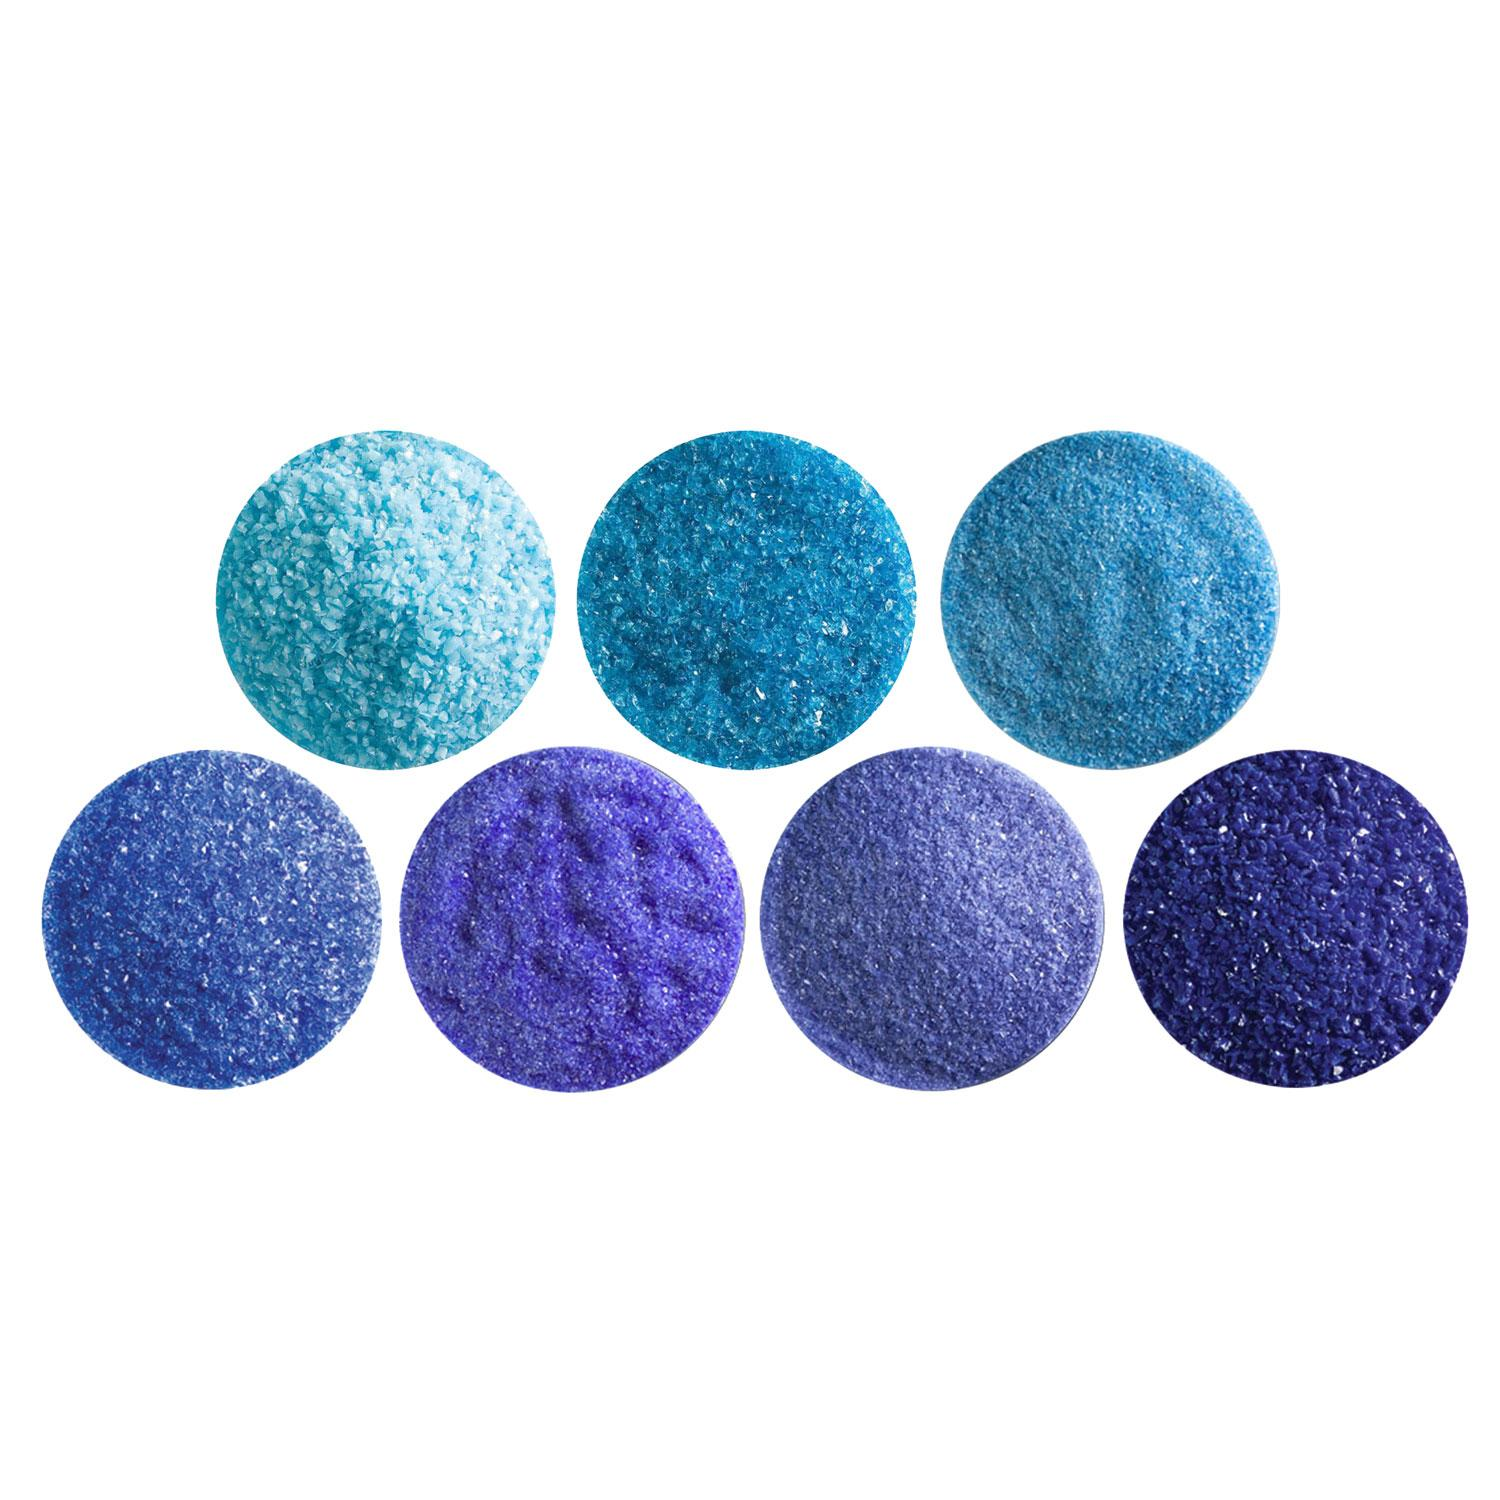 Bullseye Breathtaking Blues Frit Assortment - 90 COE